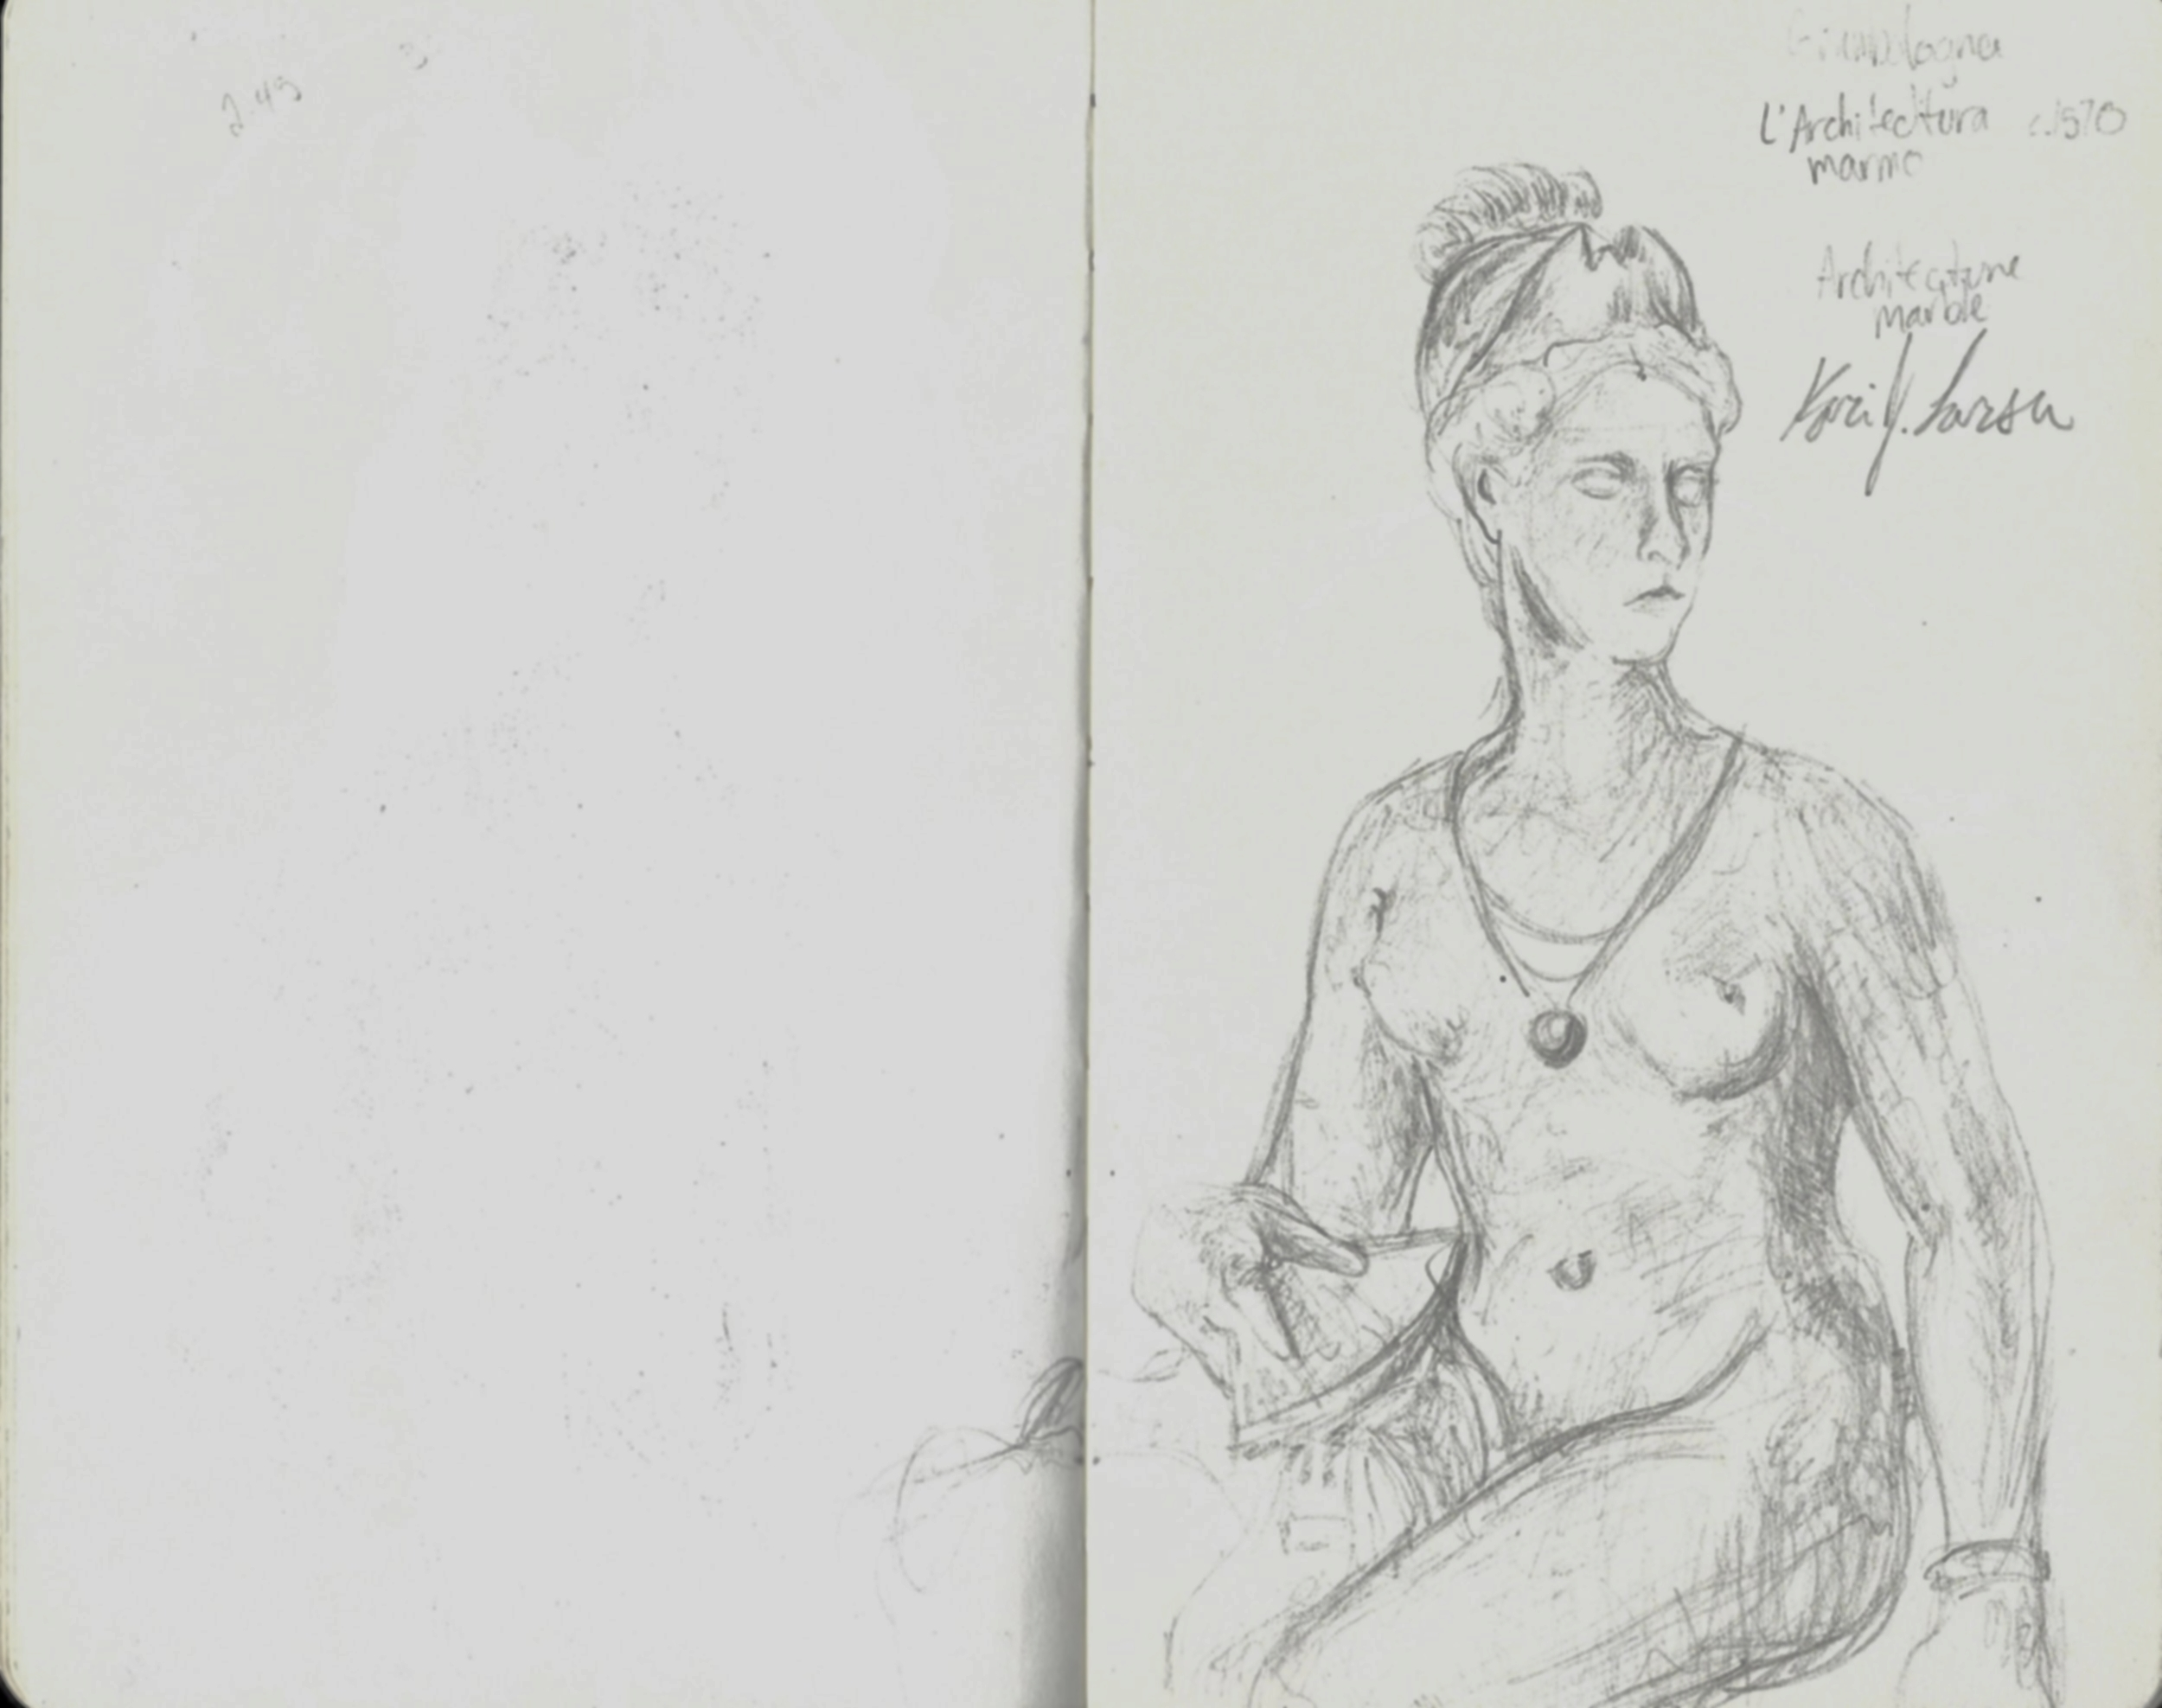 Sketch of nude figure of a woman with instrument